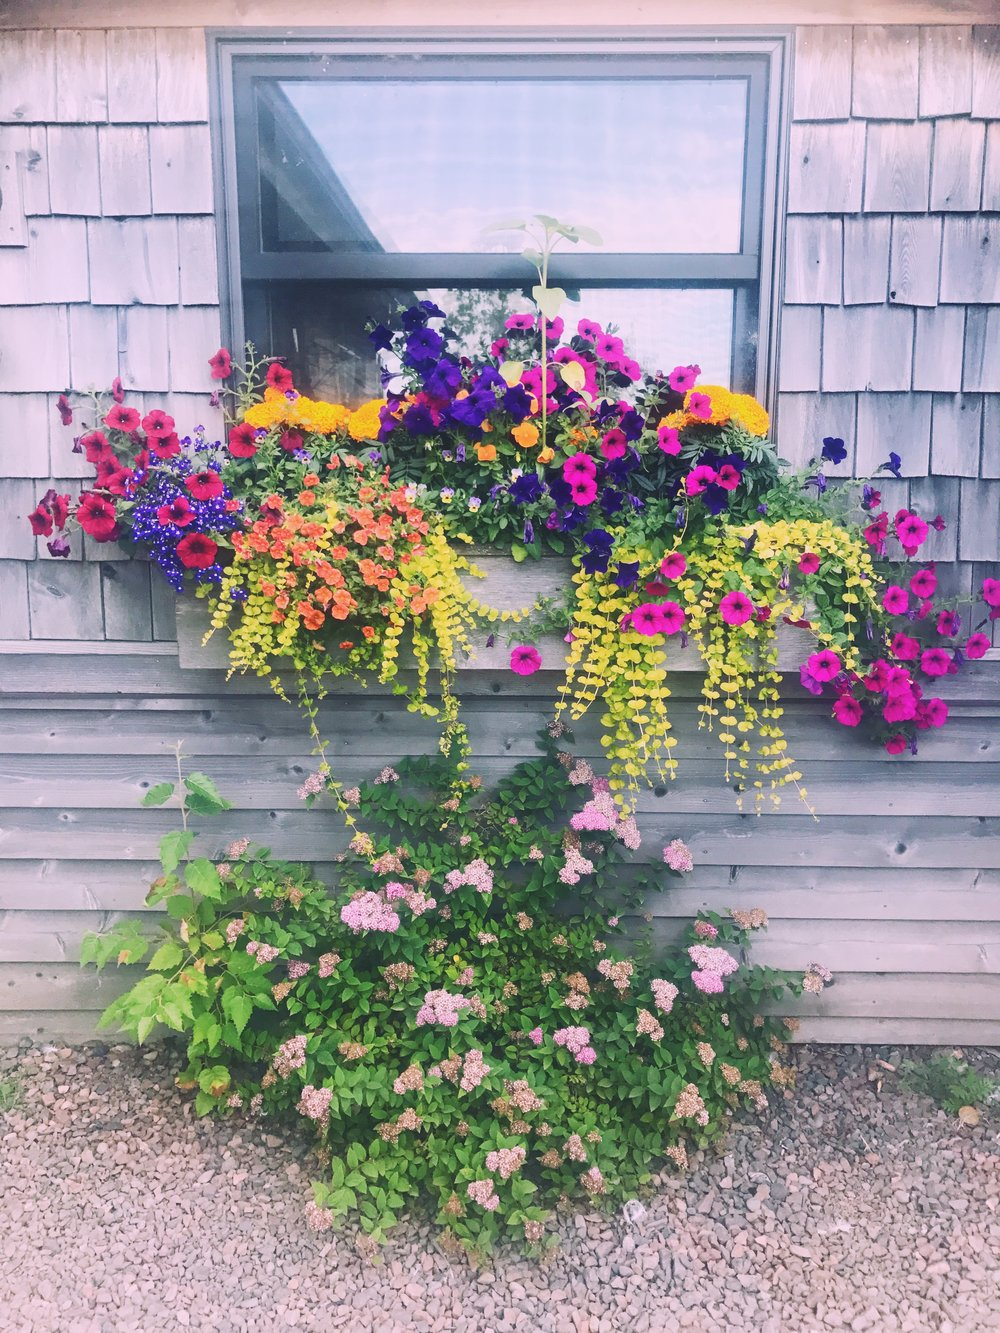 the flower boxes in grand marais are something else. so beautiful.